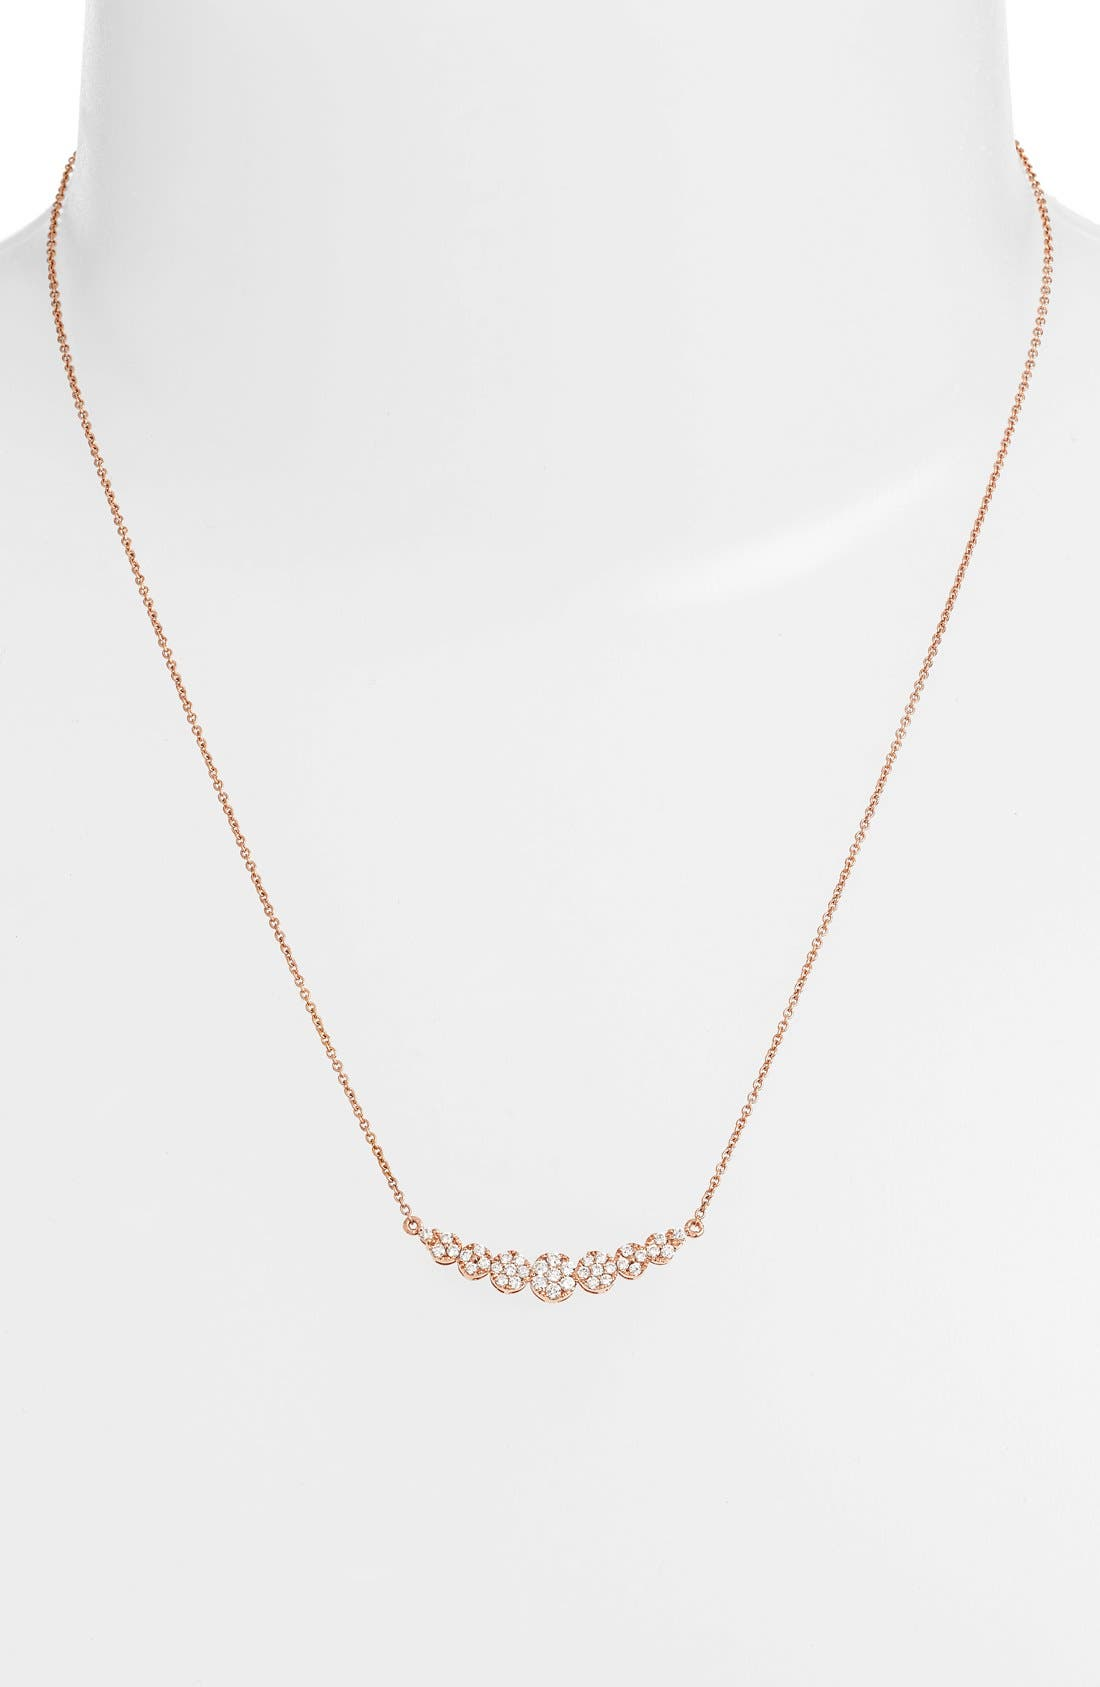 'Liora' Diamond Pendant Necklace,                             Alternate thumbnail 2, color,                             Rose Gold